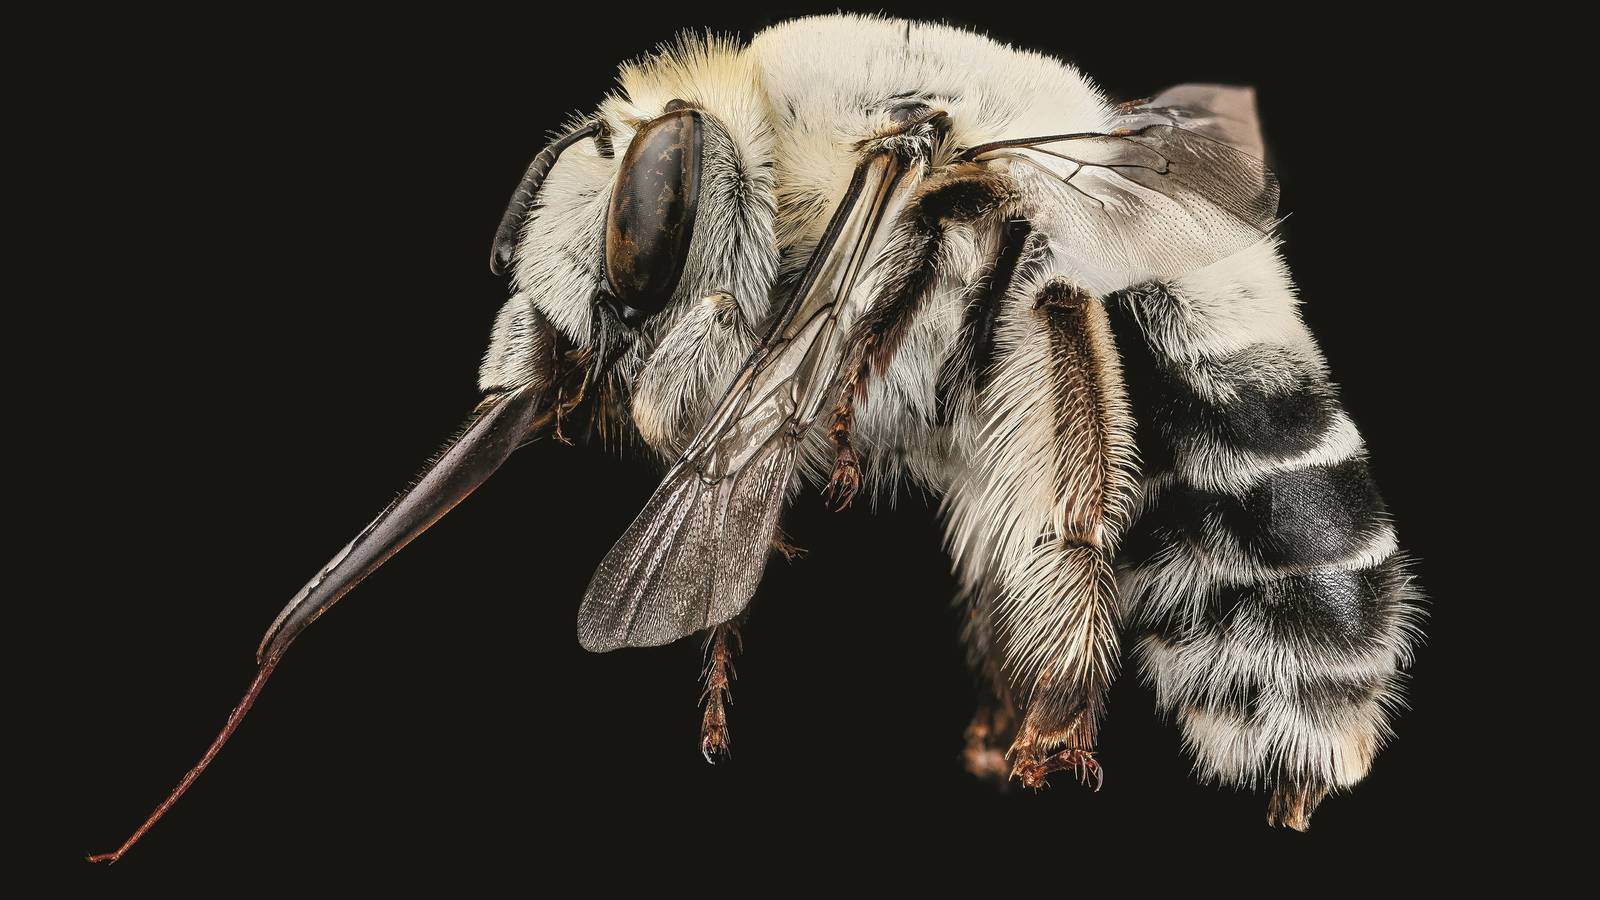 """<h3 style=""""text-align: center; padding: 50px;""""><span class=""""text-Intro-style""""><em>Anthophora affabilis</em> (bee), Badlands National Park, South Dakota. © SAM DROEGE/USGS BEE INVENTORY AND MONITORING LAB</span></h3>"""